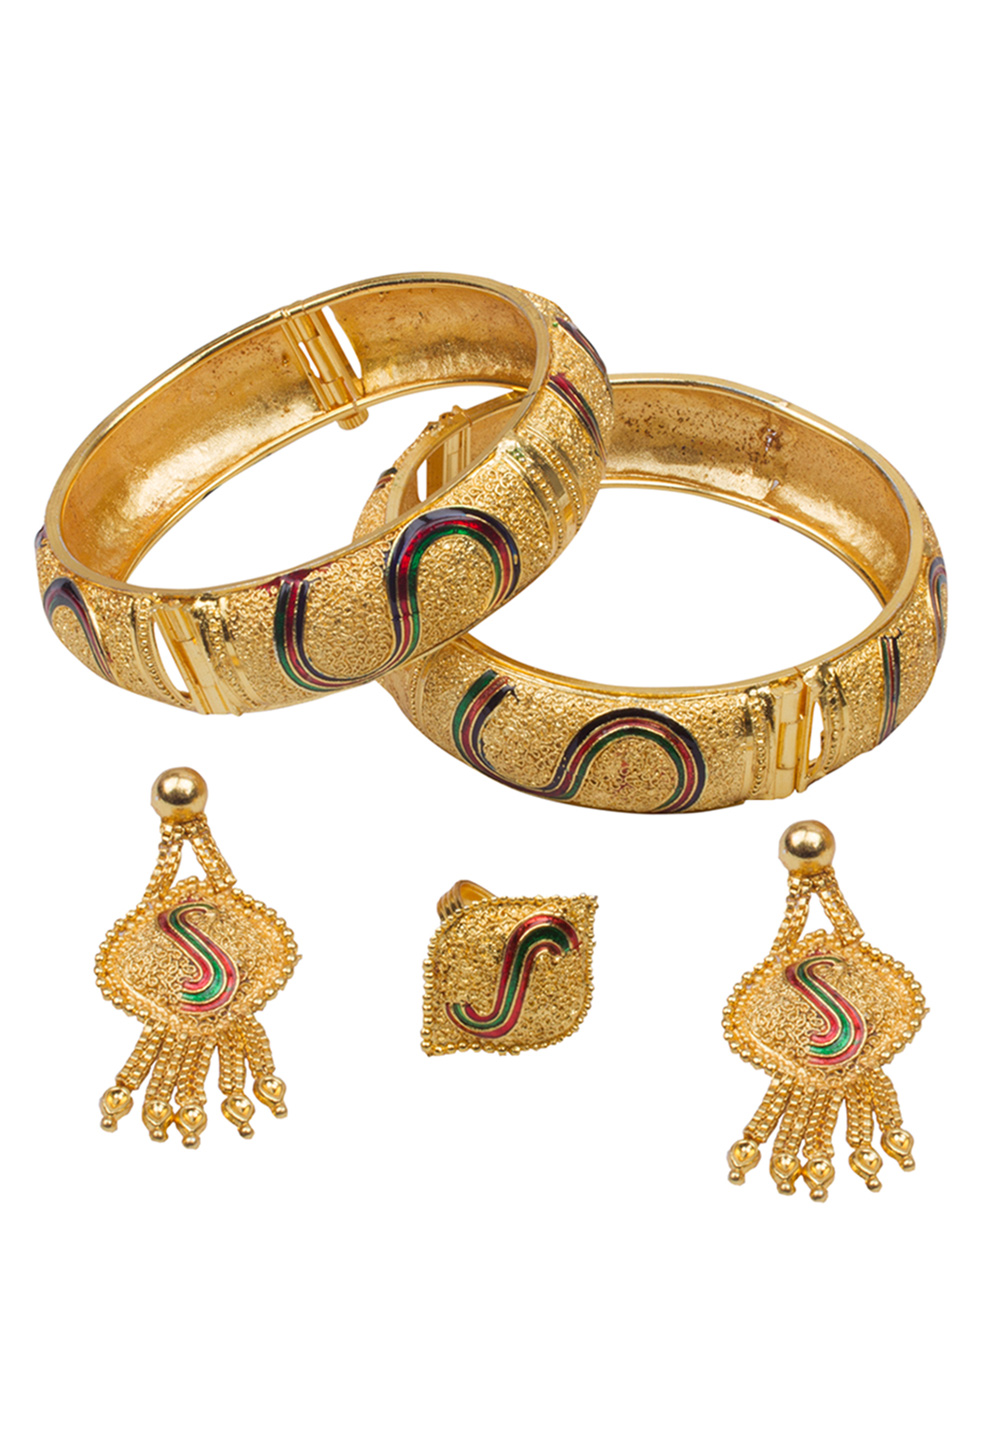 Golden Brass Bangle With Earring and Ring 157694